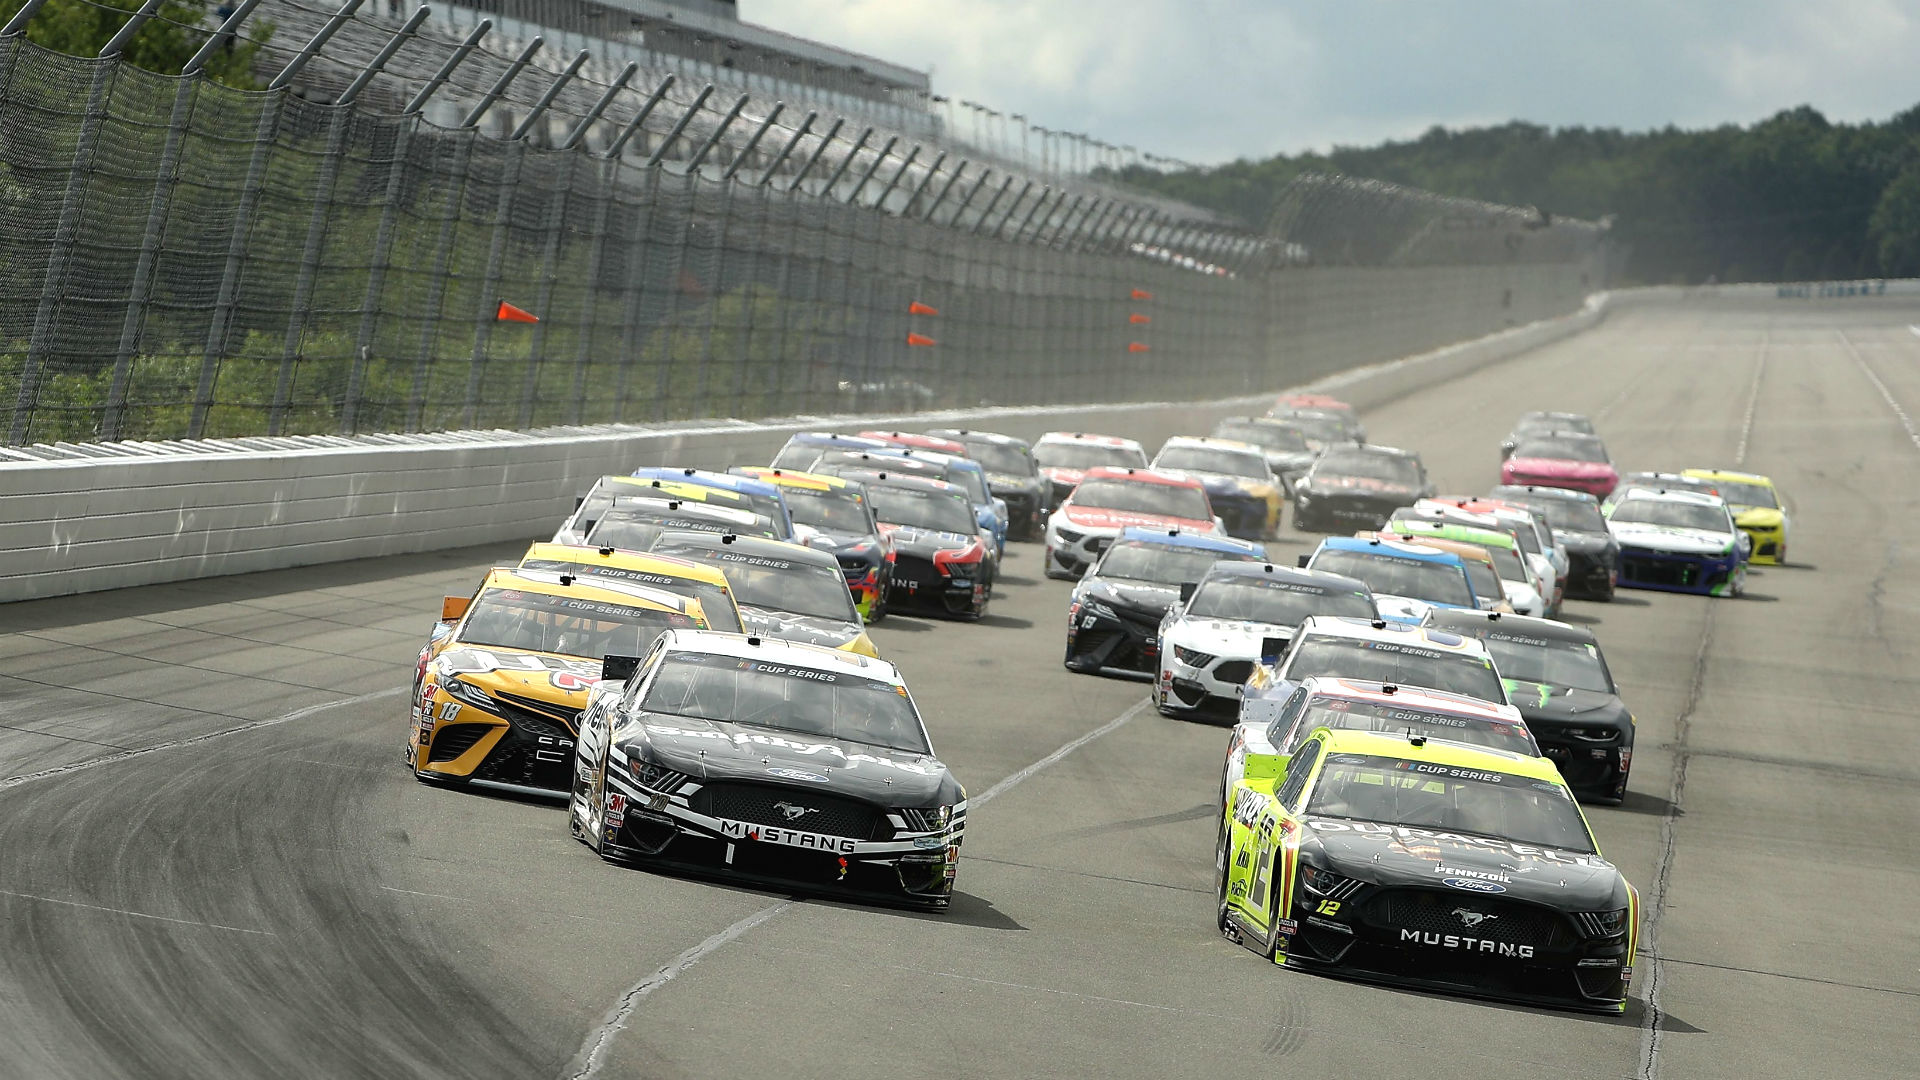 NASCAR at Pocono: Race results, highlights from Saturday's first leg of doubleheader